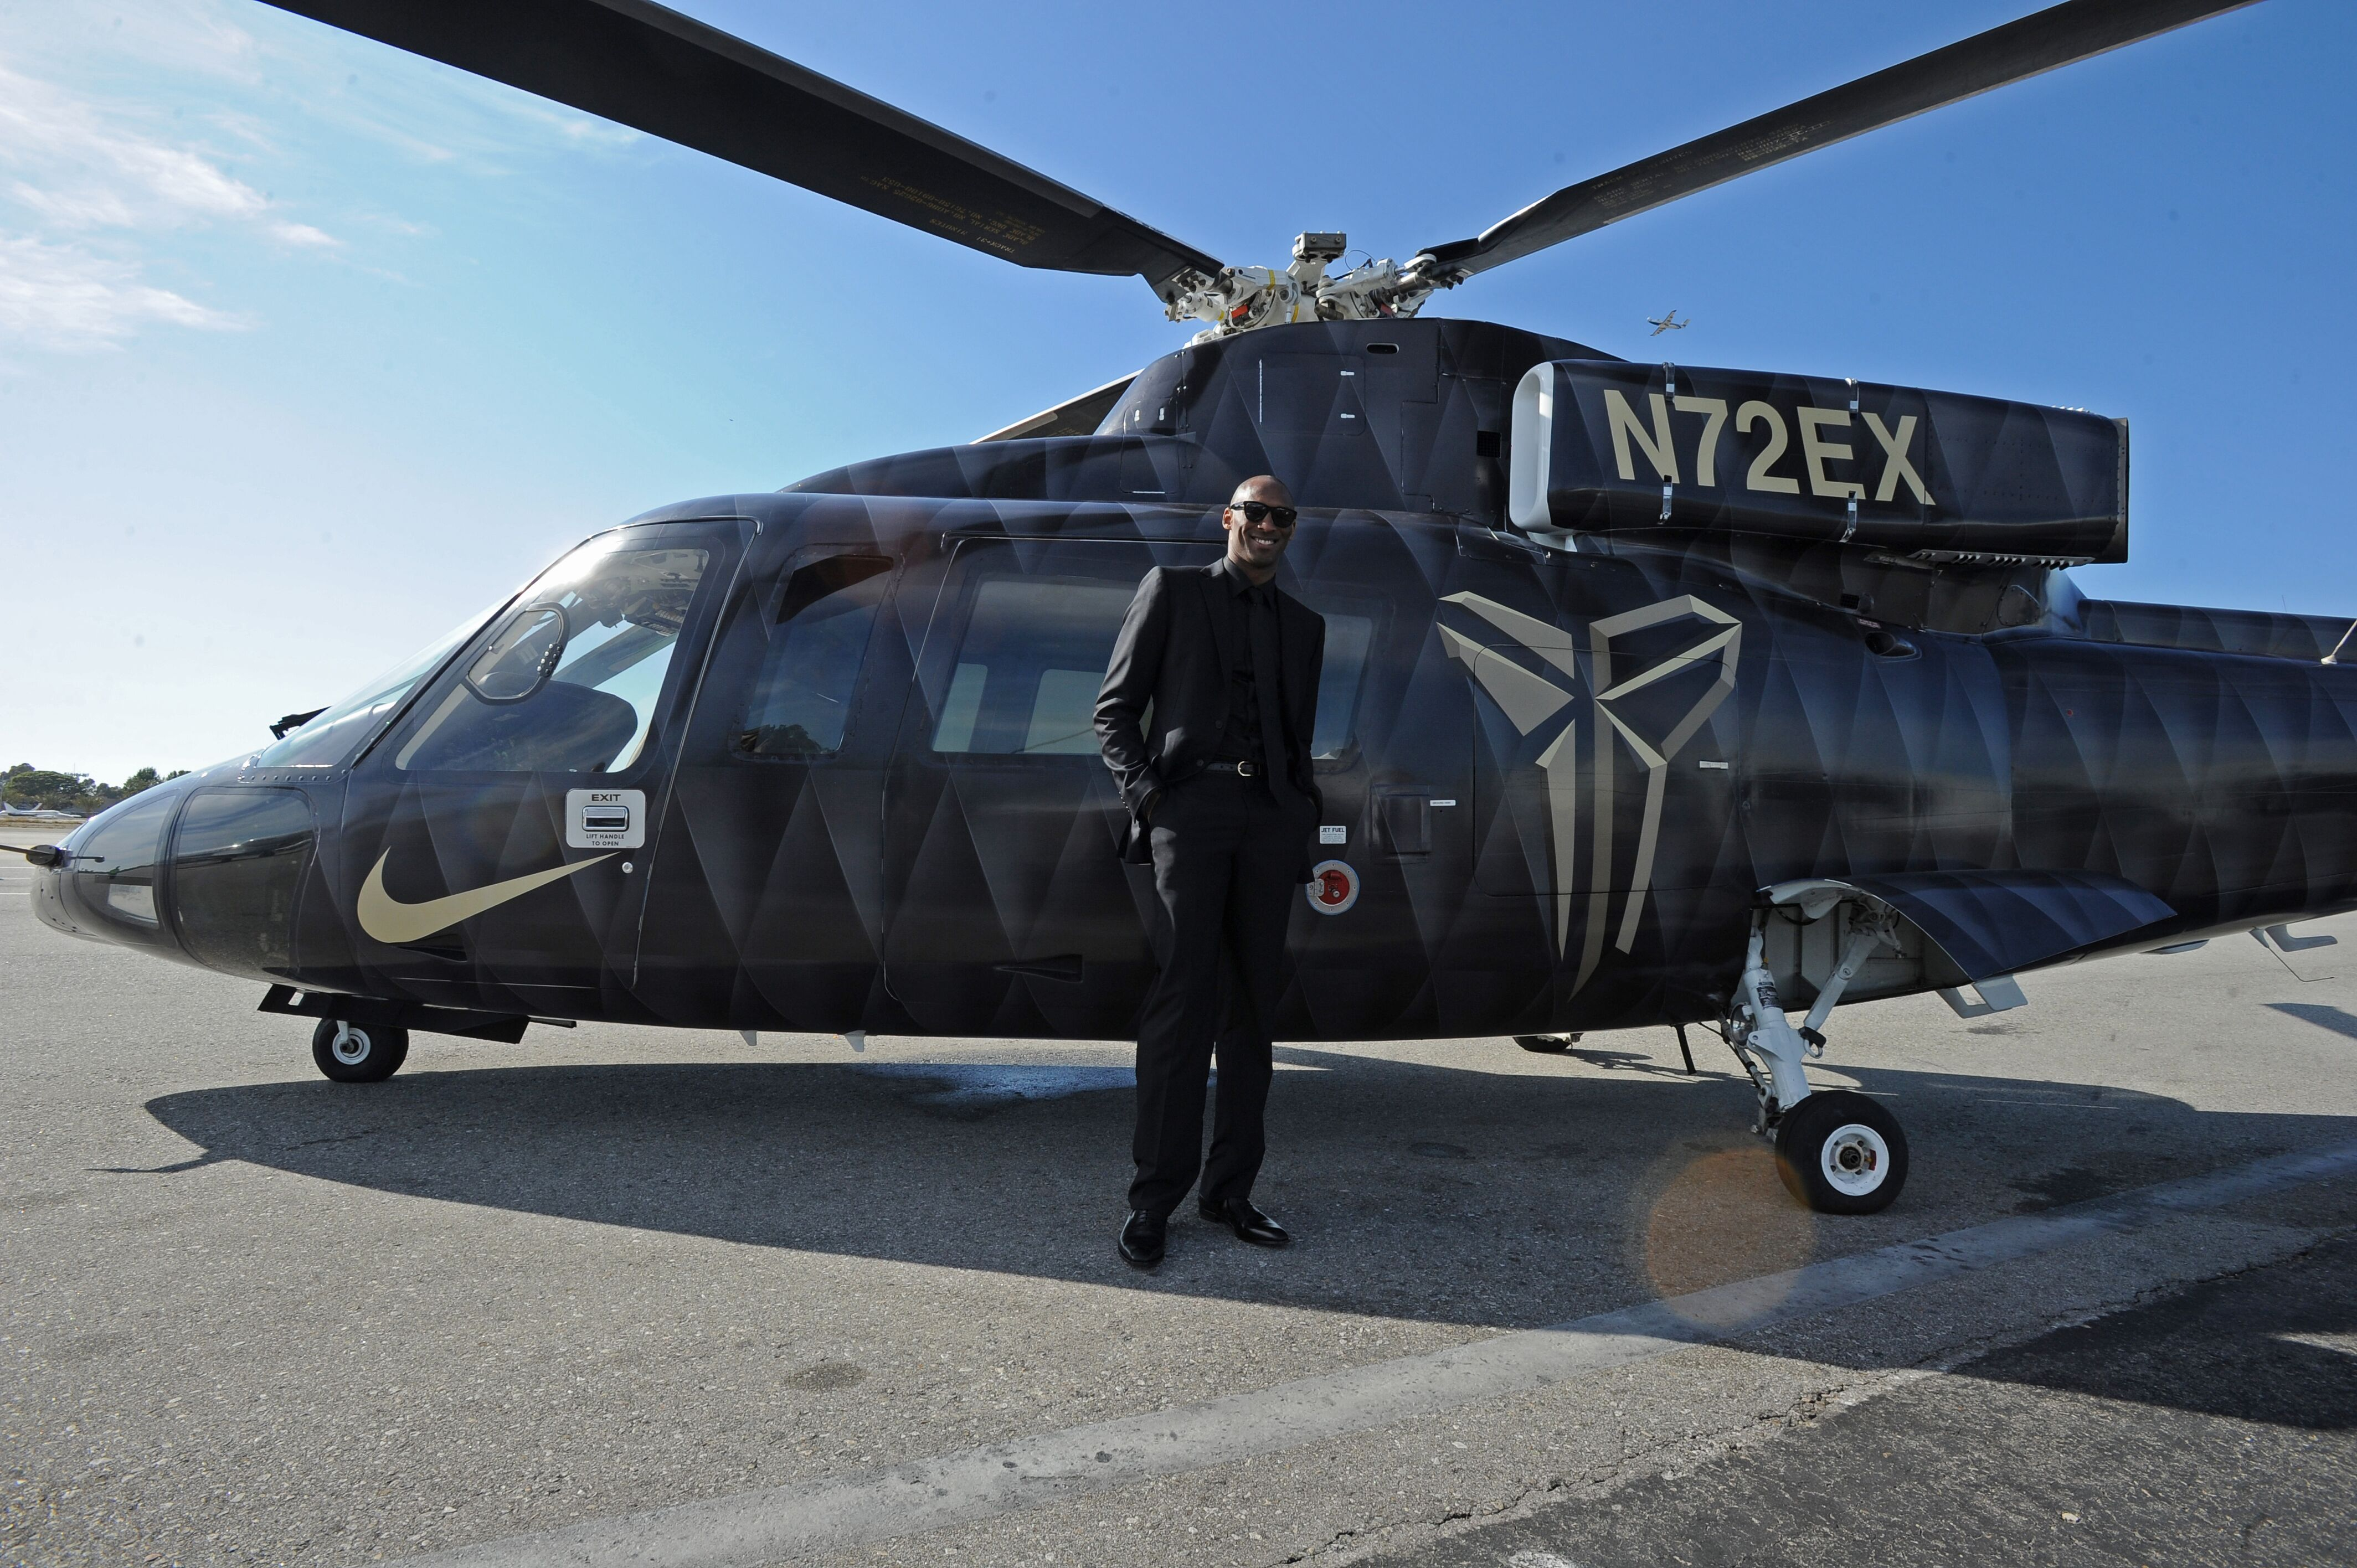 Kobe Bryant poses in front of his helicopter at Staples Center in Los Angeles, in 2016/ Source: Getty Images